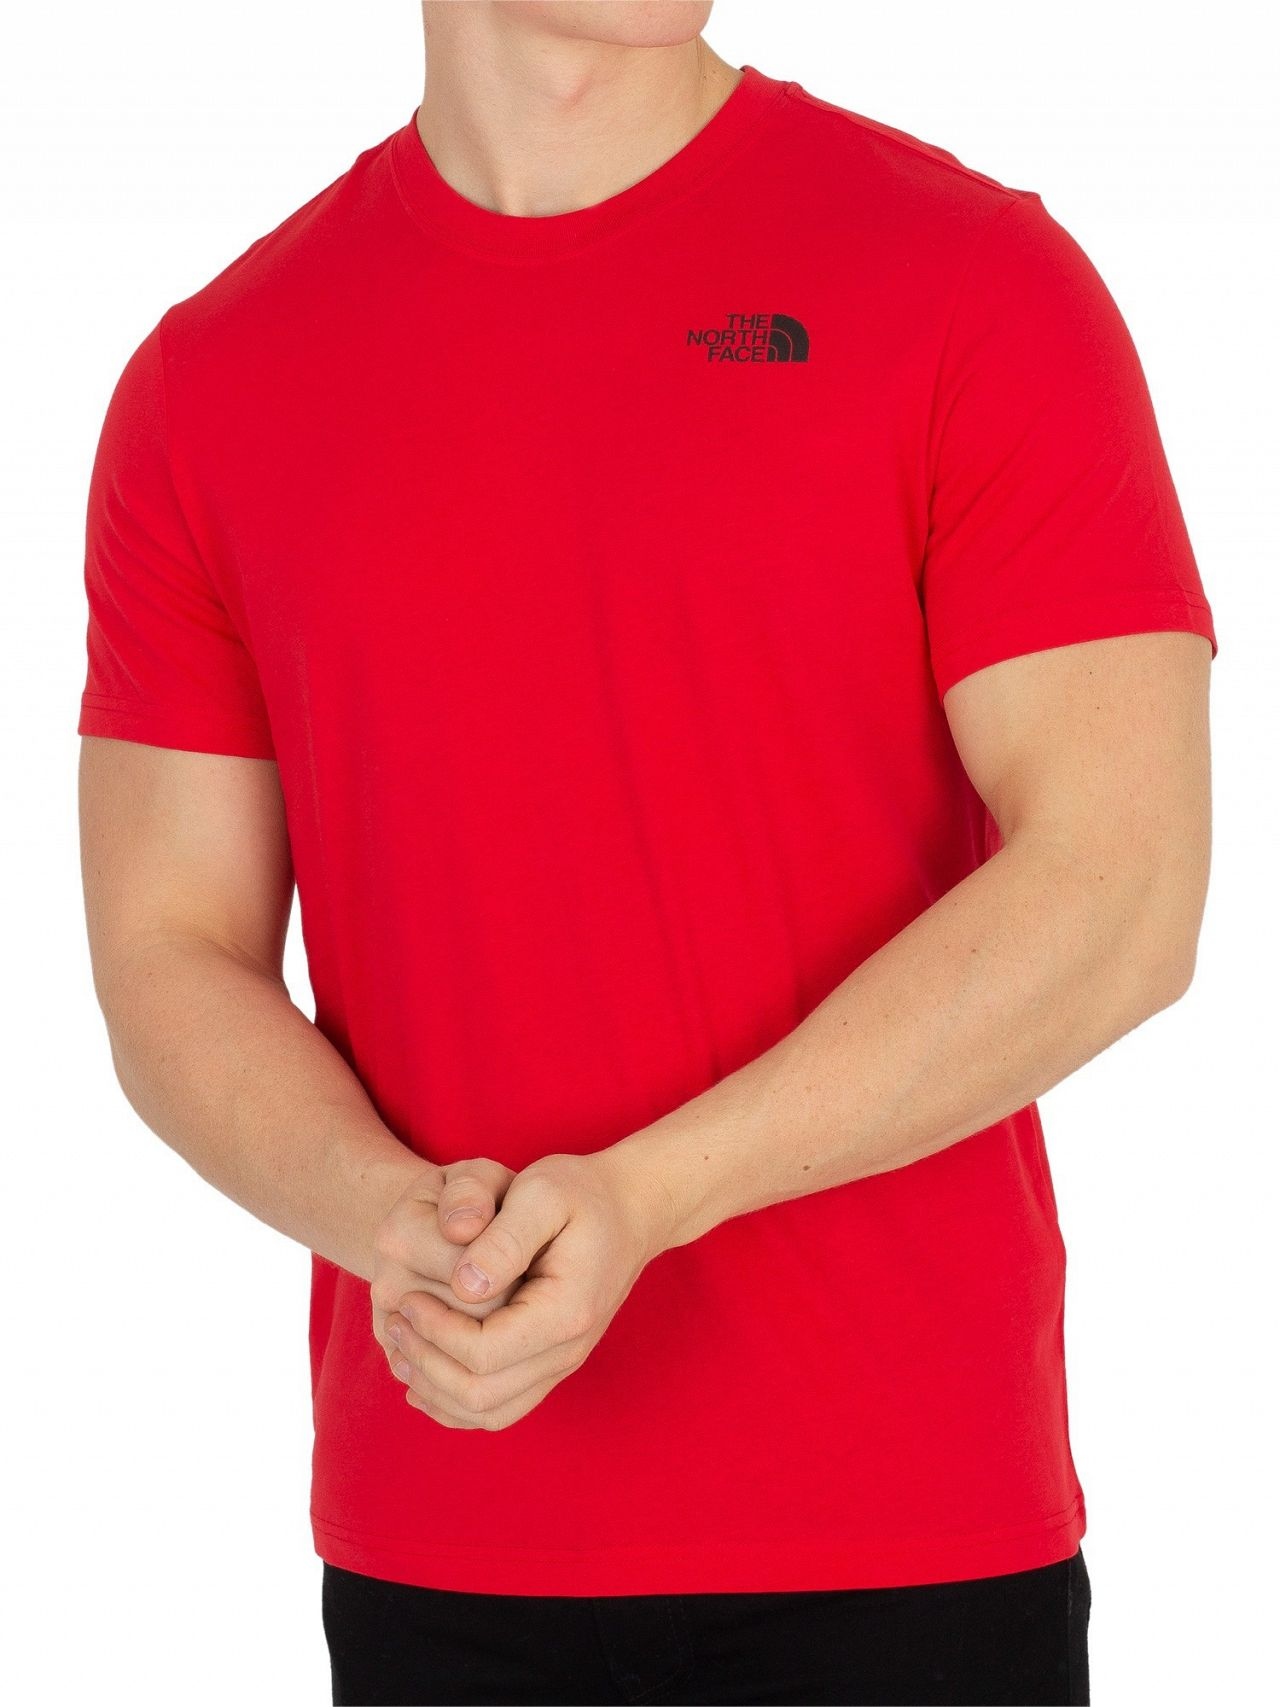 8c9c981b9 The North Face Red Box T-Shirt